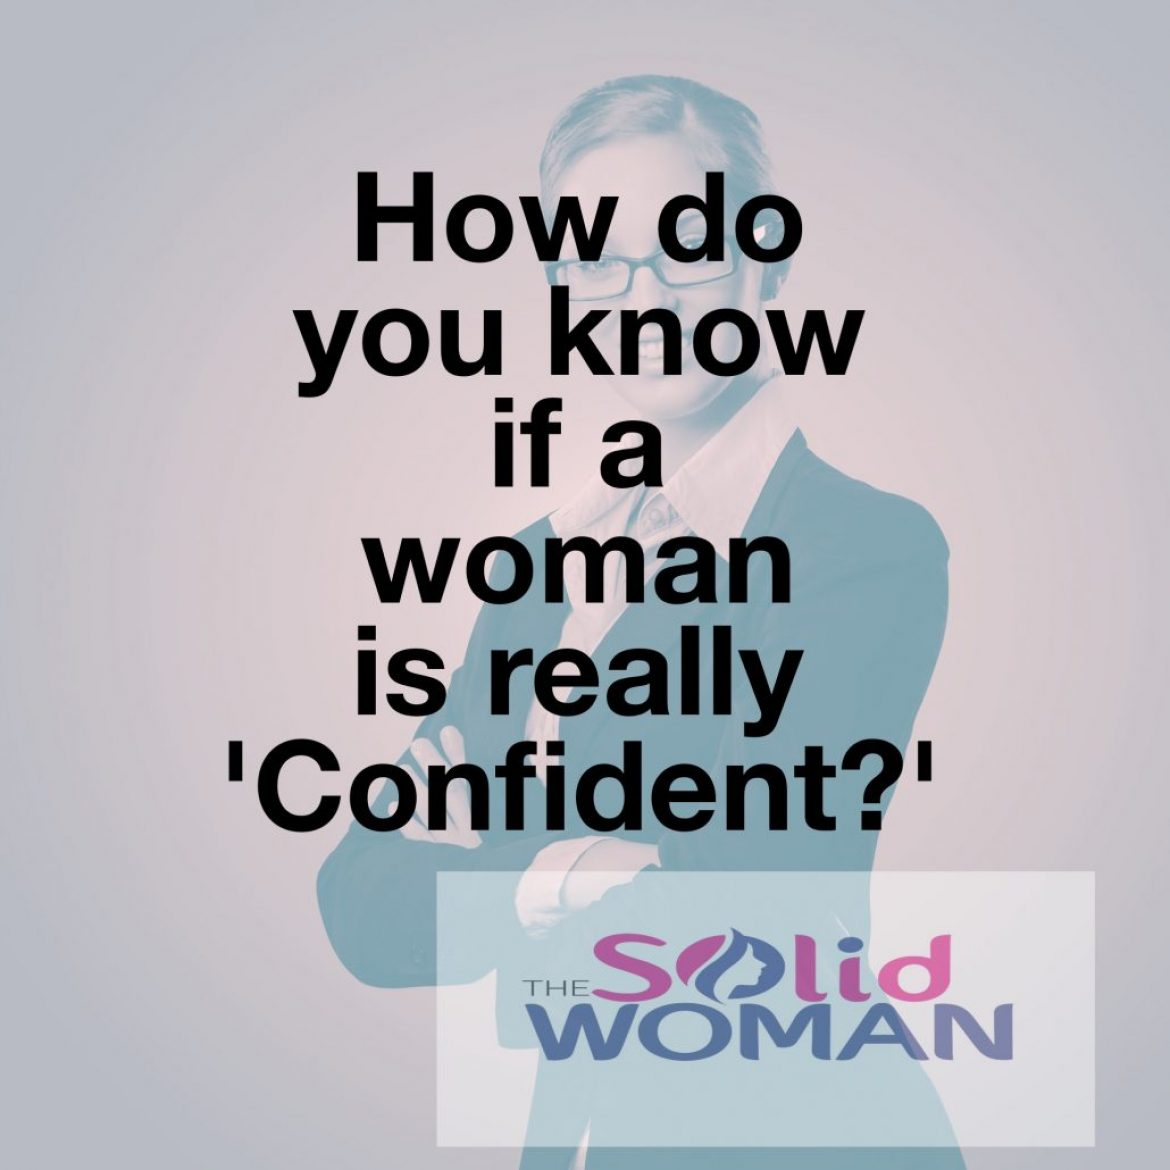 How 'Confident' are you?